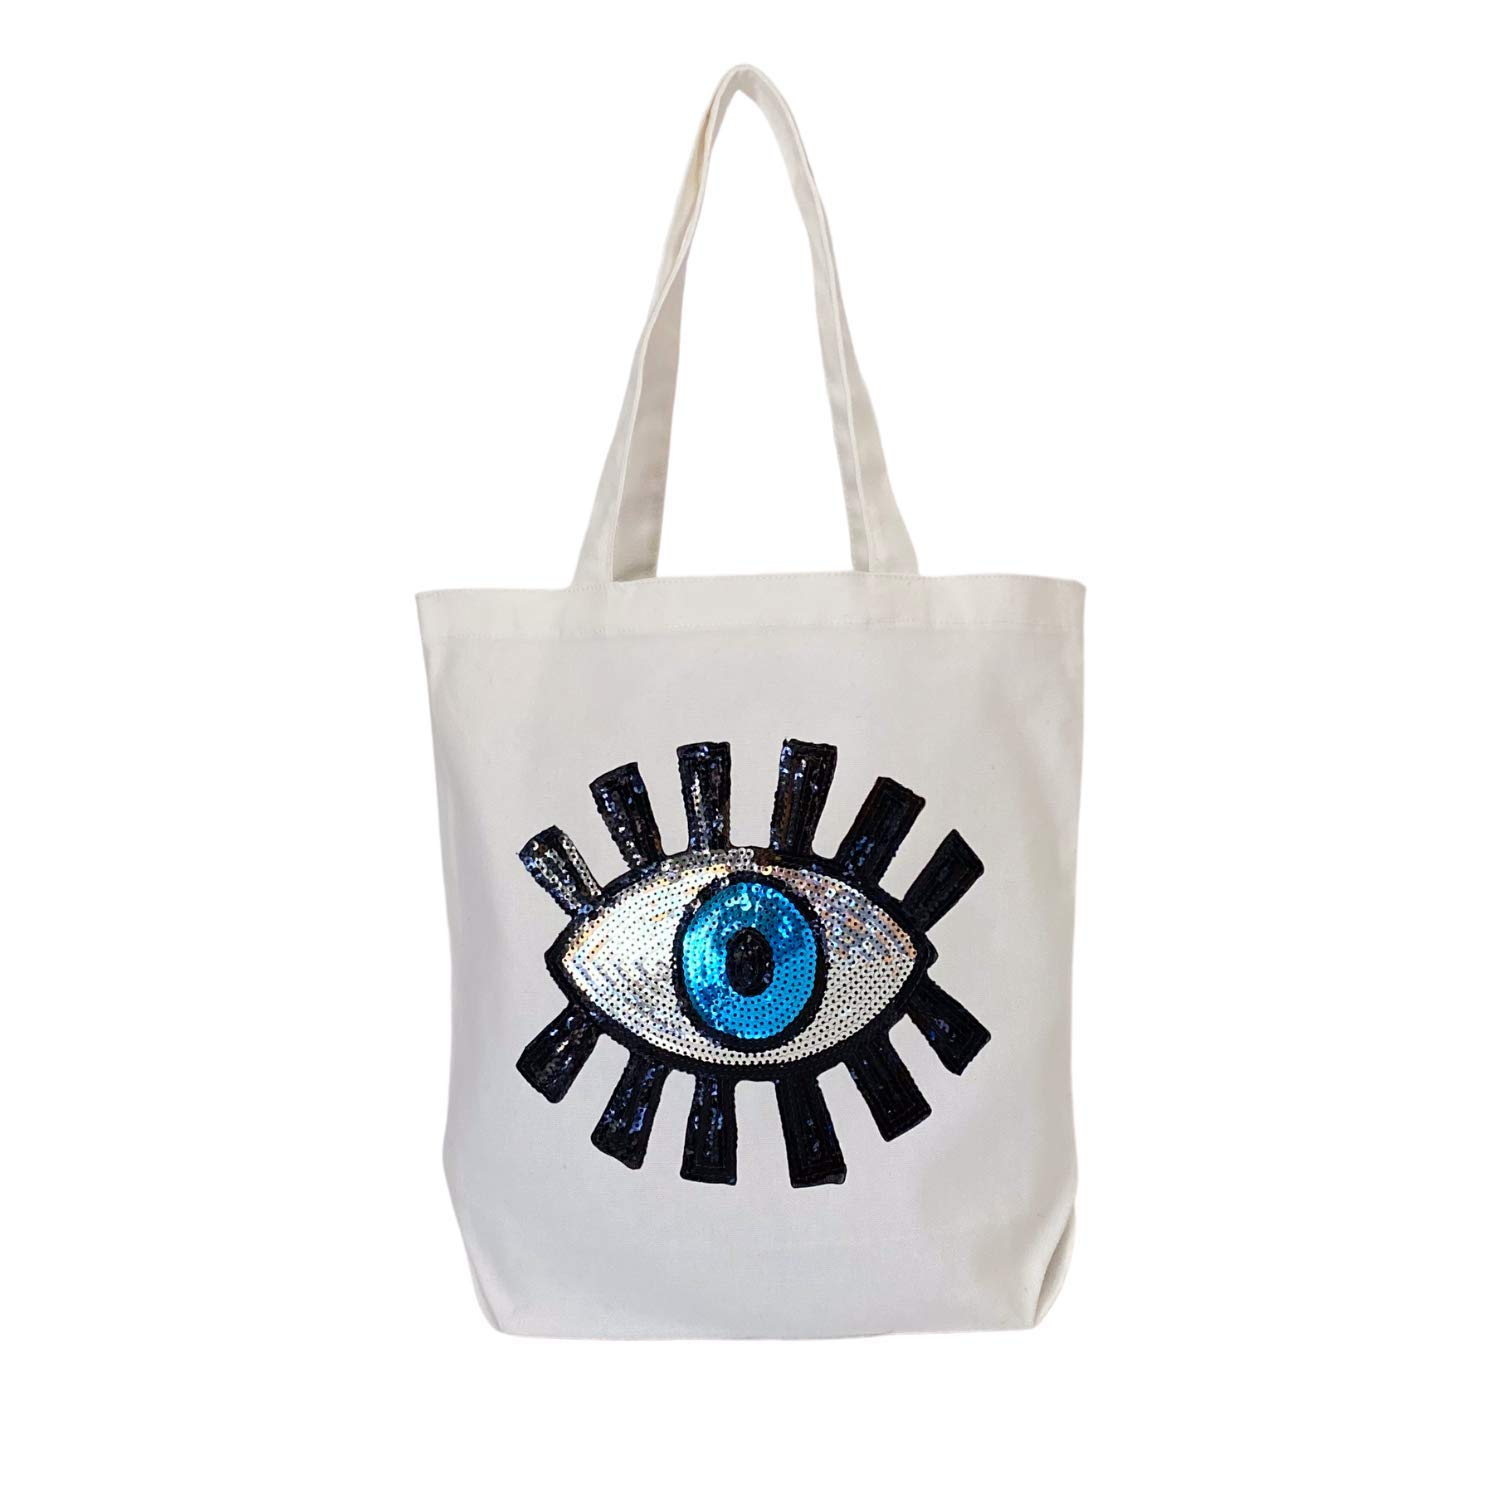 Canvas Max 47% OFF Popularity Tote Bag Eco-Friendly Beach Gusset Bottom Flat L Bags